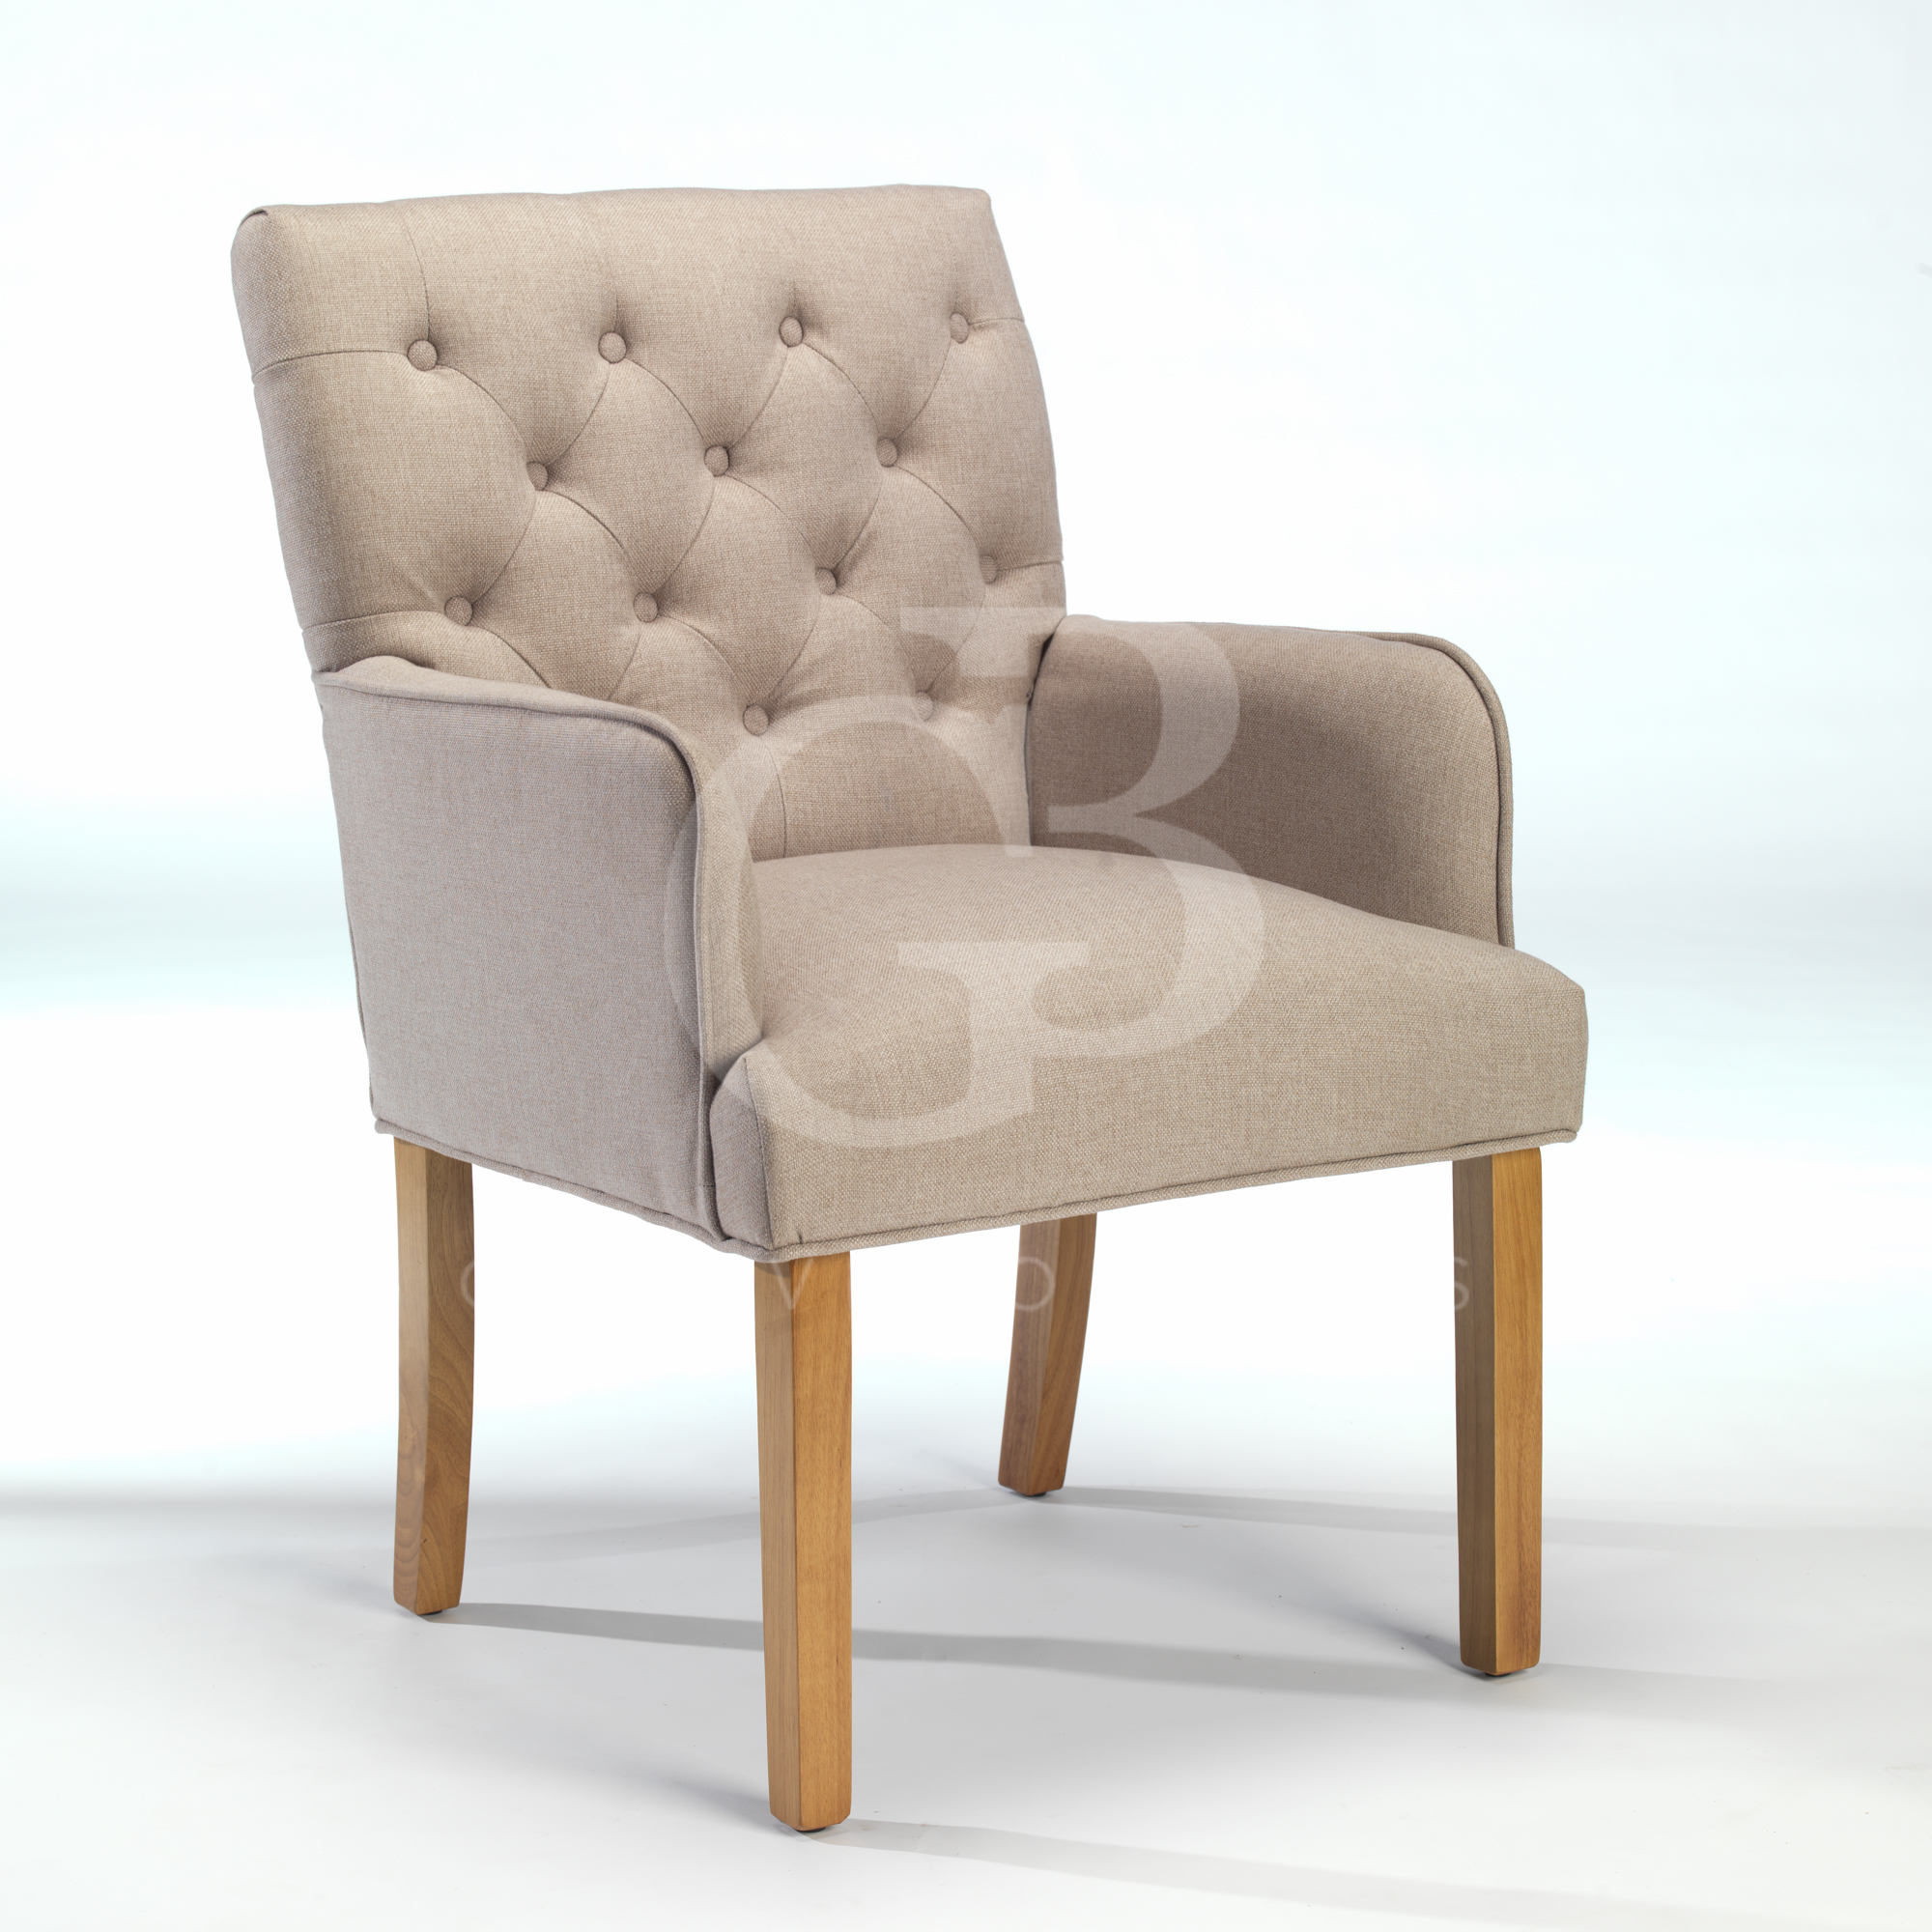 Upholstered Club Chair New Upholstered Buttoned Back Dining Chair Club Chair